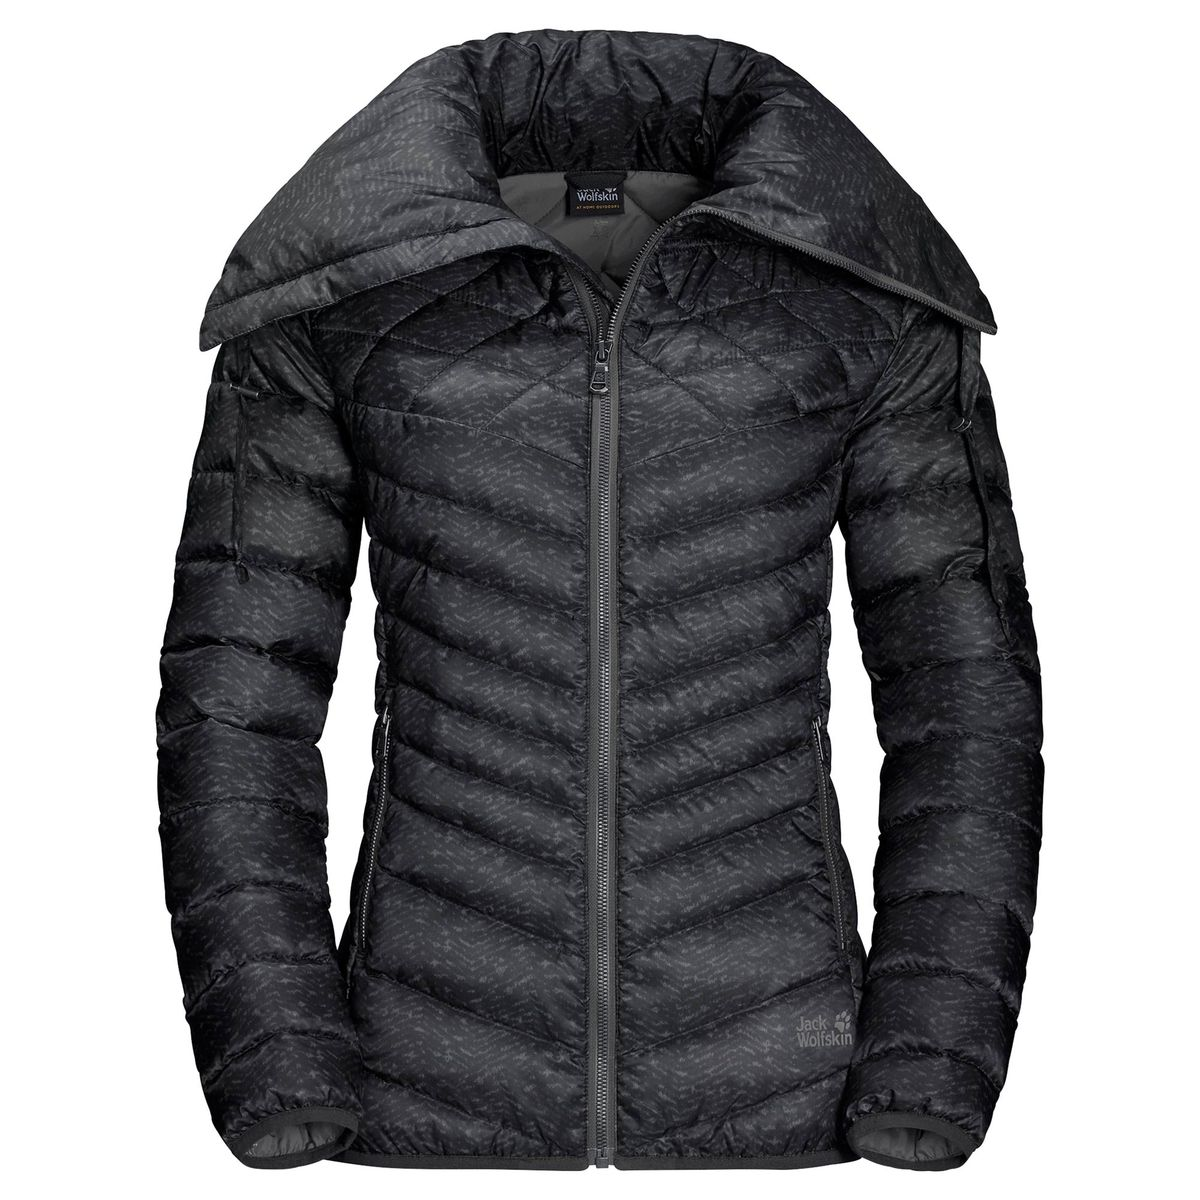 reputable site 8de60 a2b90 Jack Wolfskin RICHMOND HILL JACKET Damen Jacke